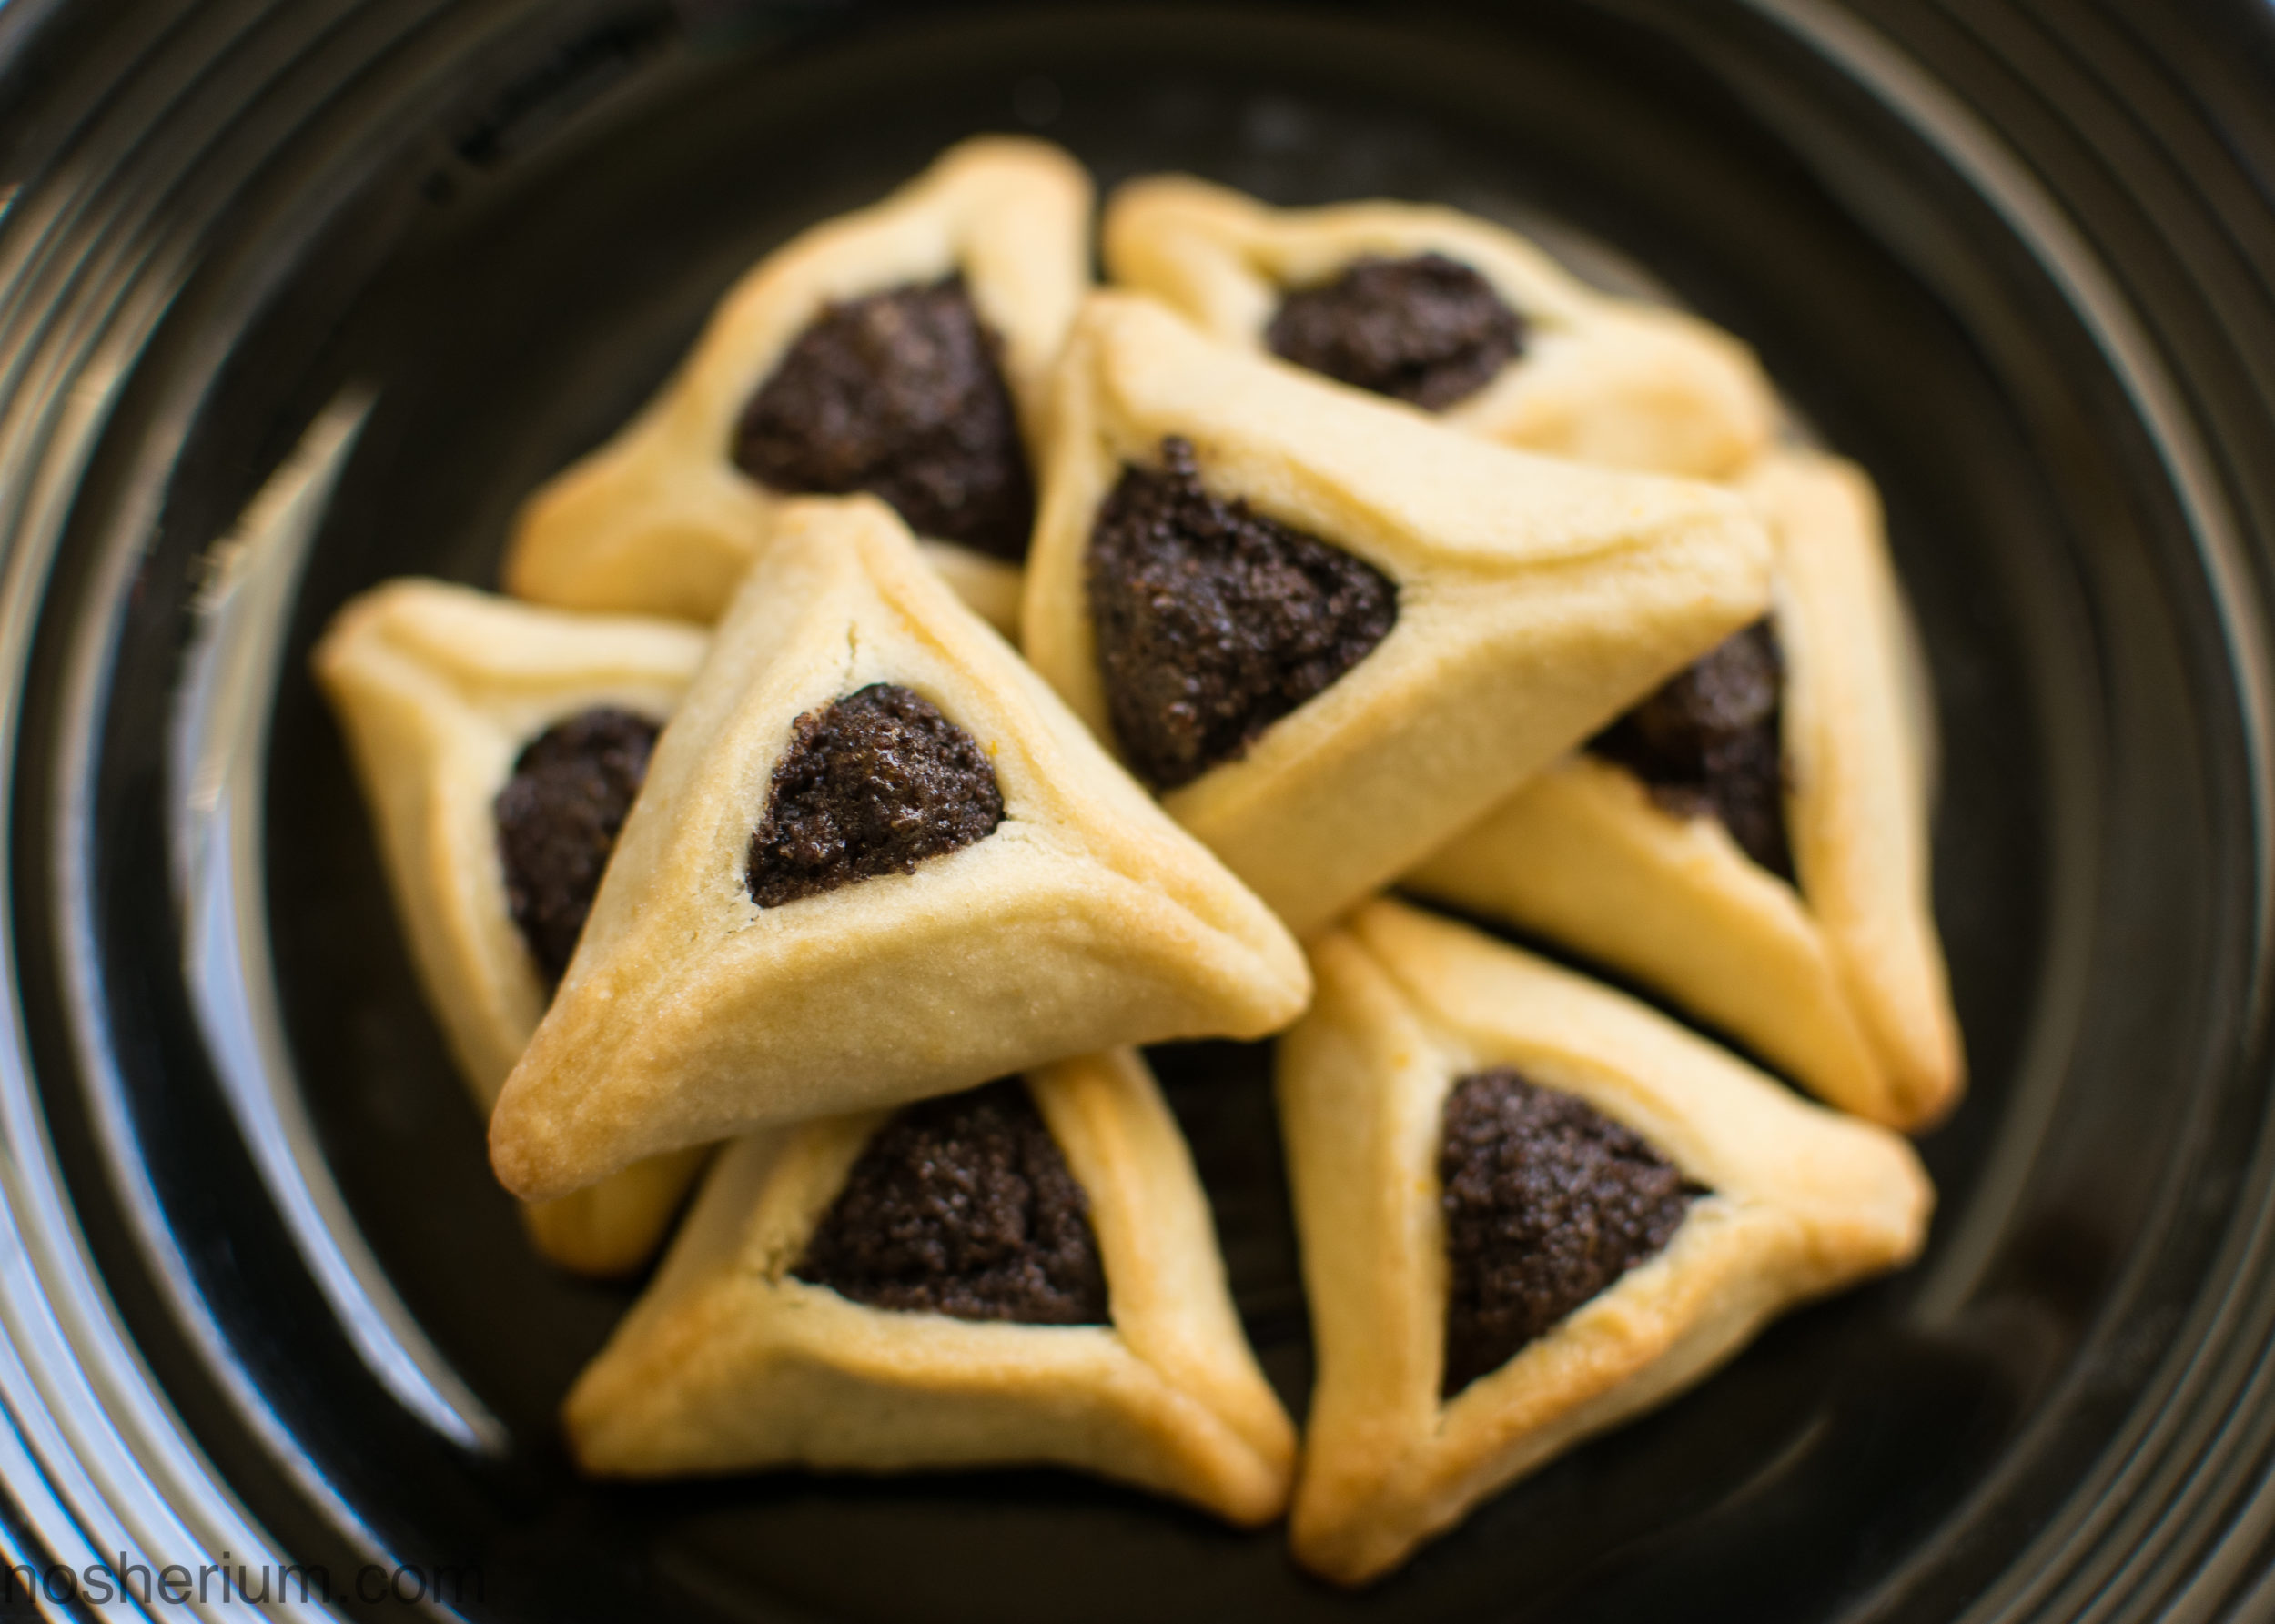 Nosherium Vegan Poppy Seed Hamantaschen (7 of 8)